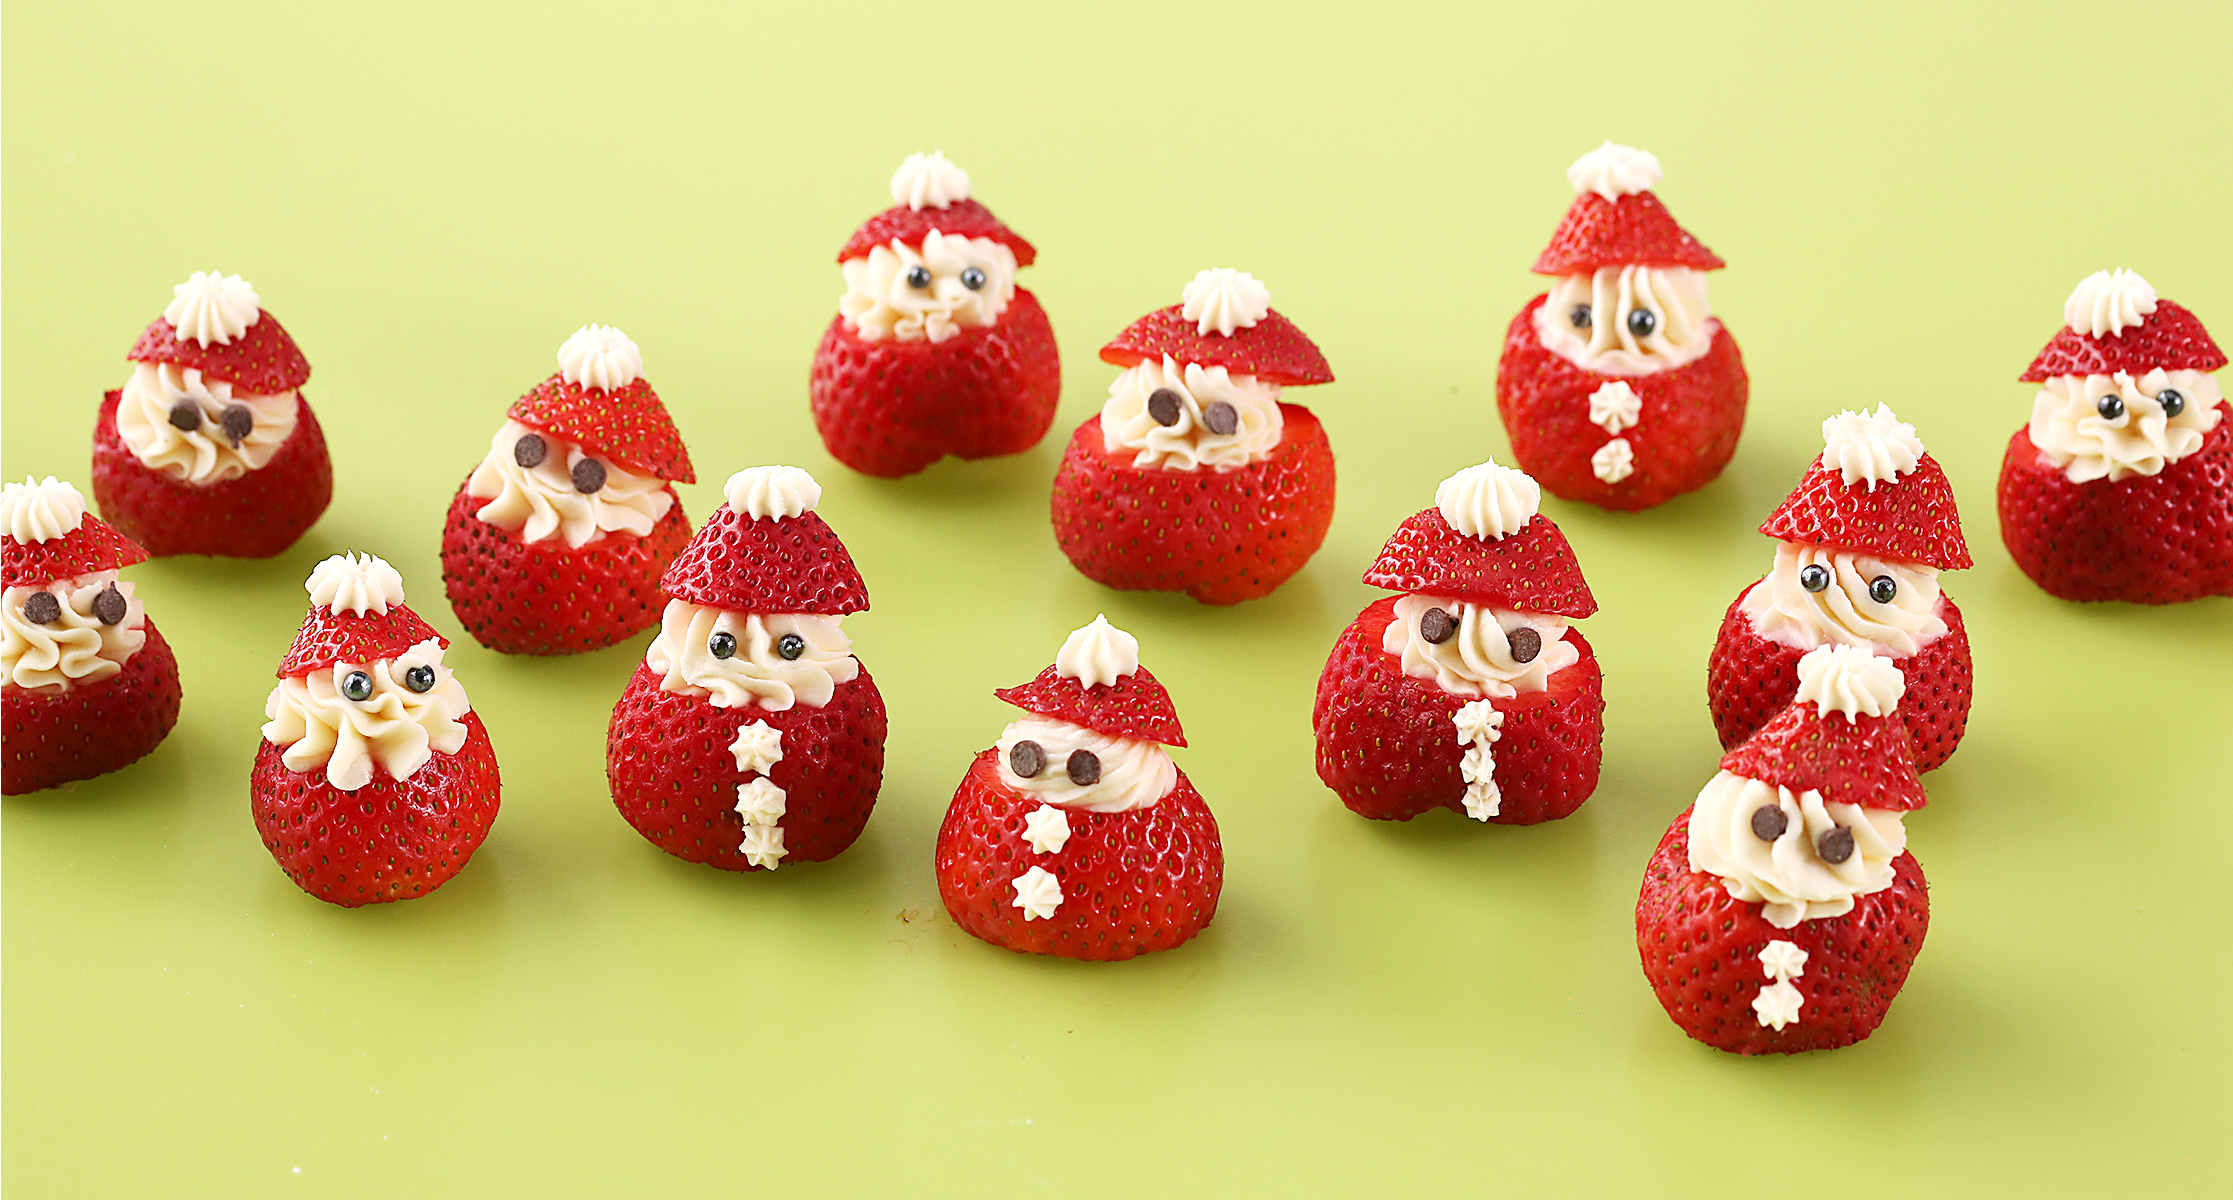 Santa Strawberries on green table